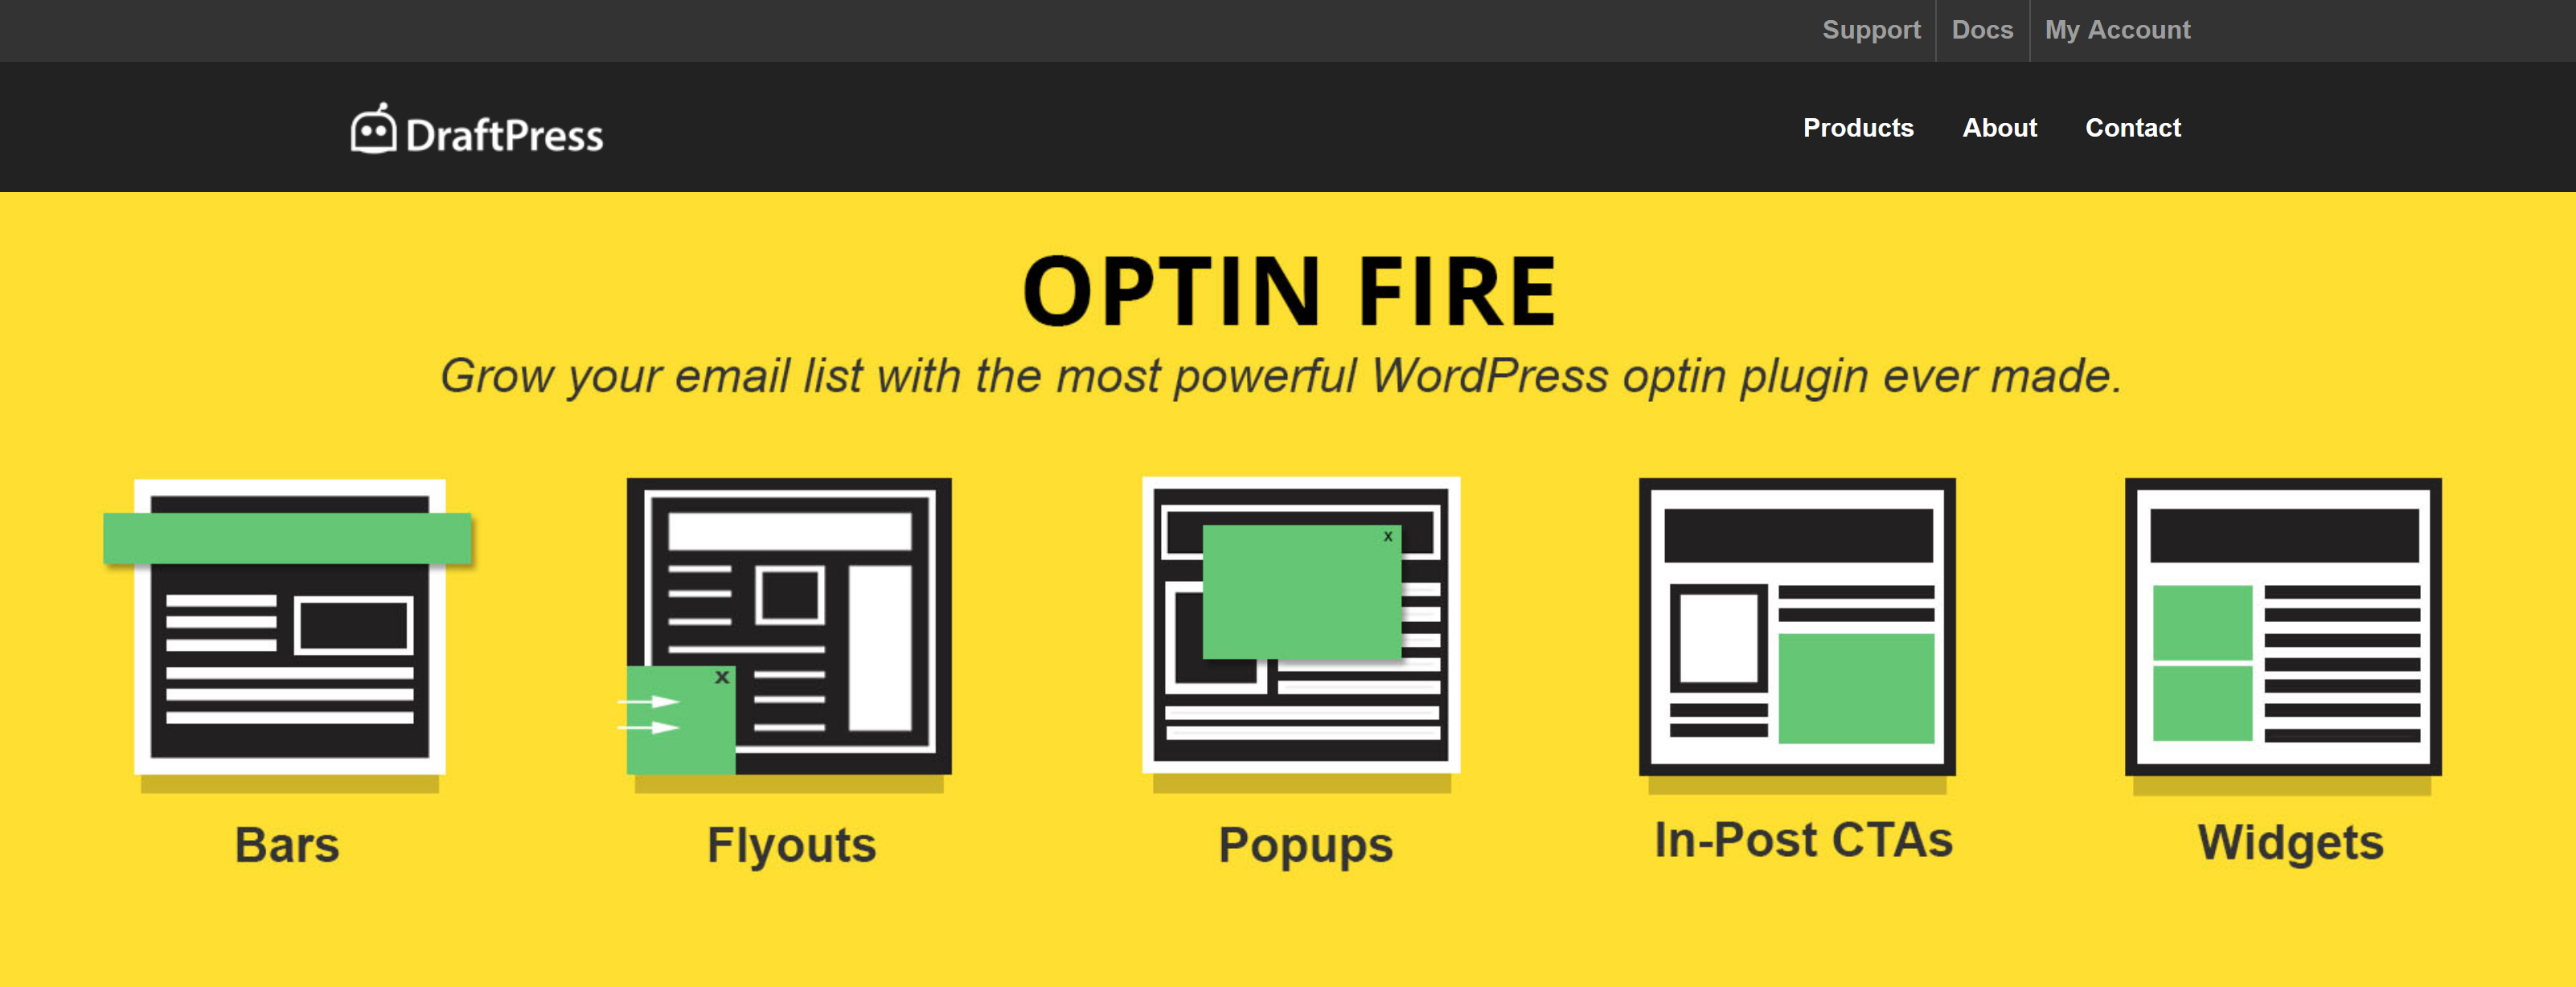 DraftPress Optin-Fire 1.2.0 – Most PowerFul WordPress Optin Plugin Ever Made